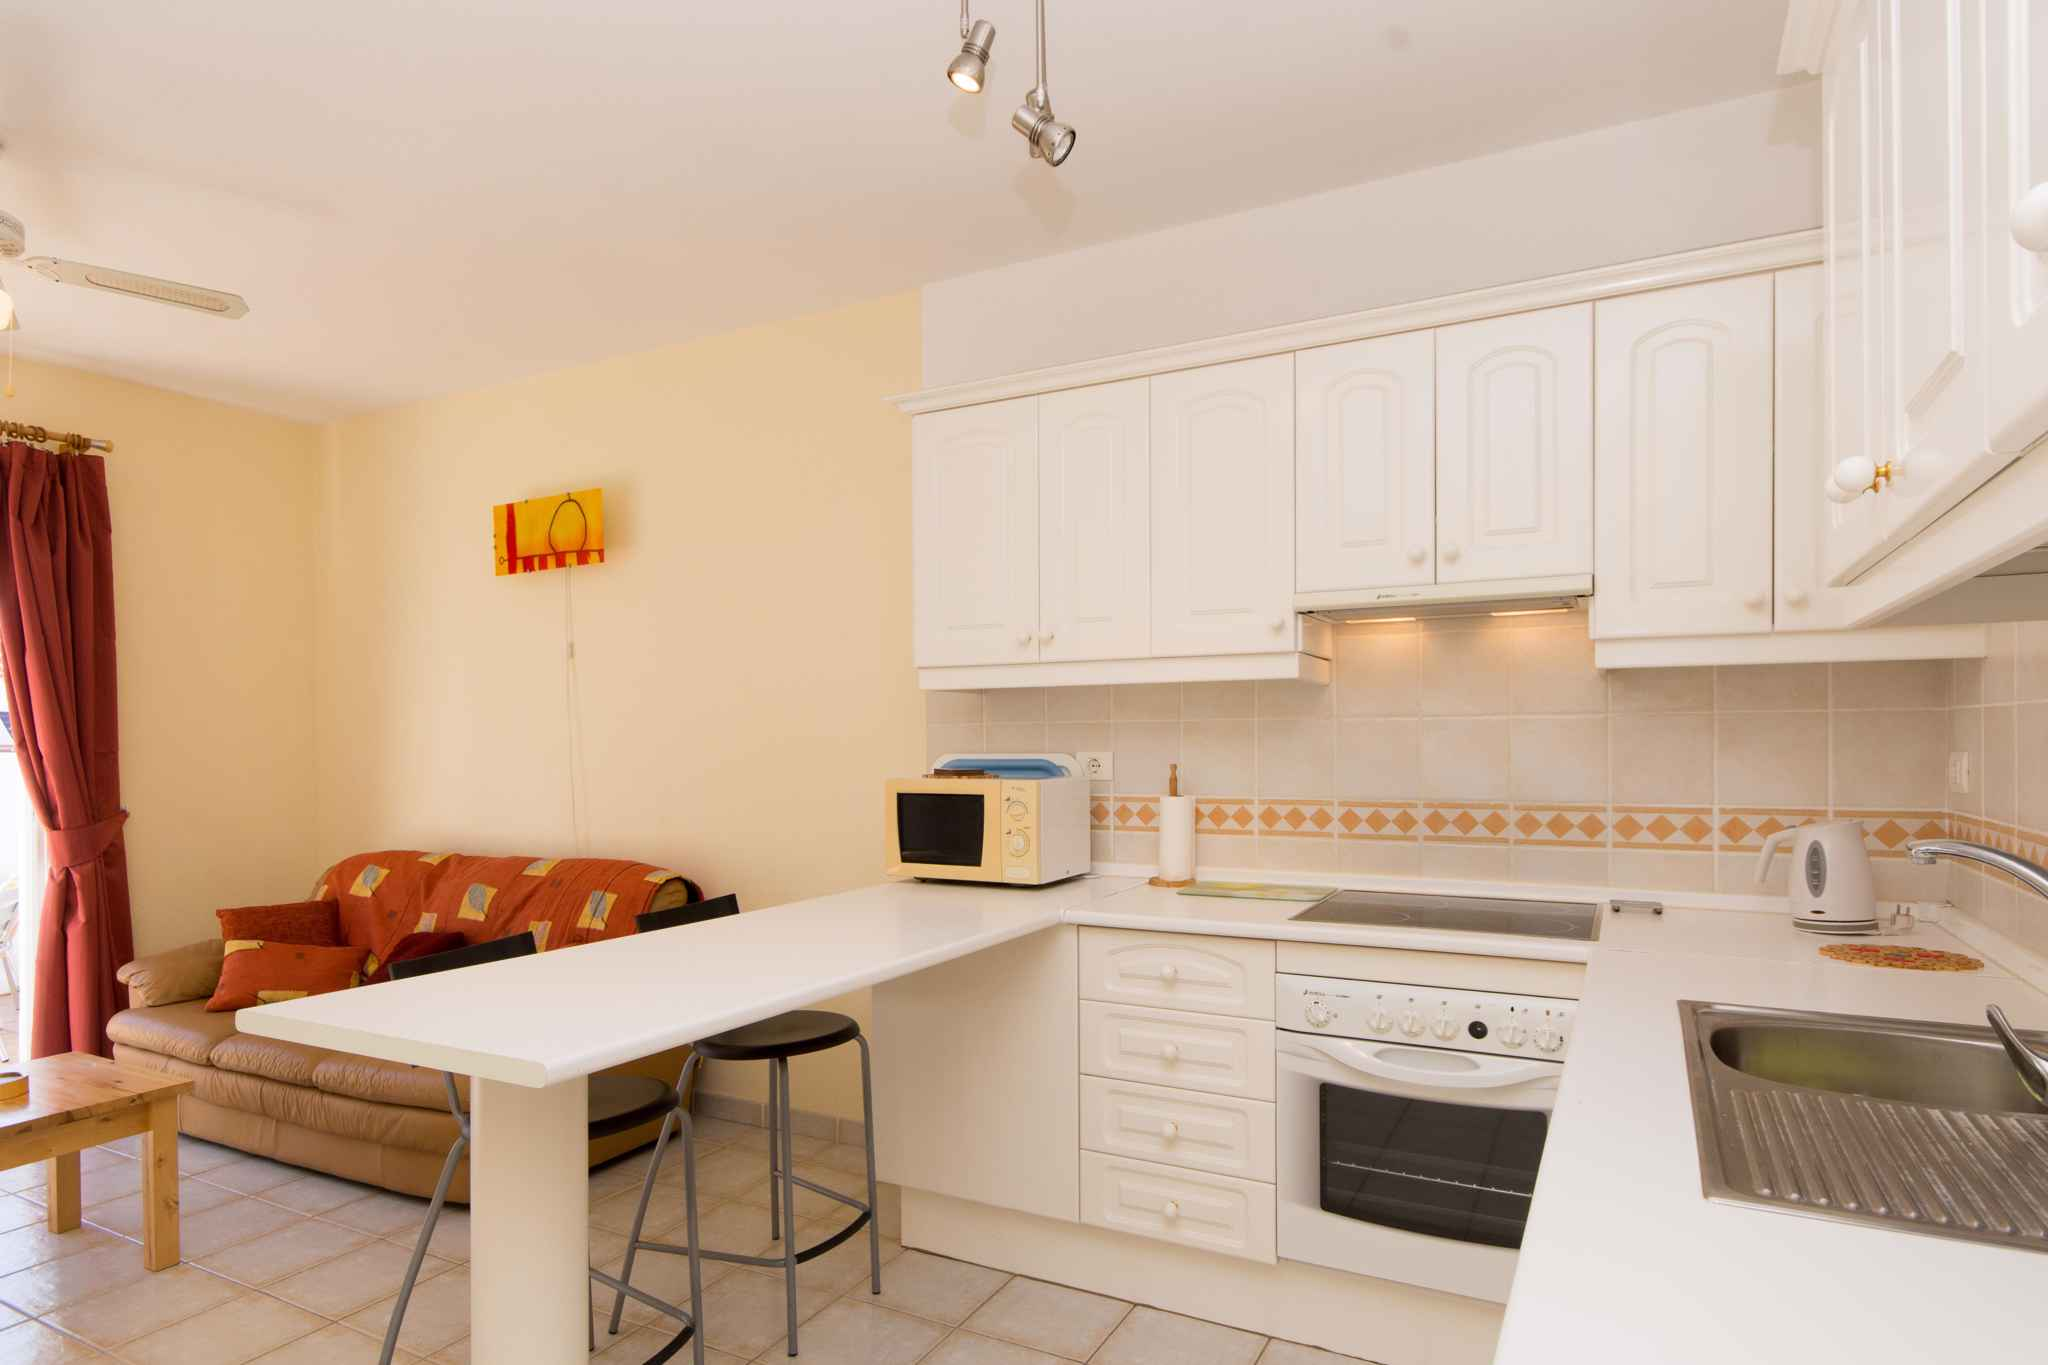 Holiday apartment mit Pool in Ferienanlage (2382979), Los Cristianos, Tenerife, Canary Islands, Spain, picture 12